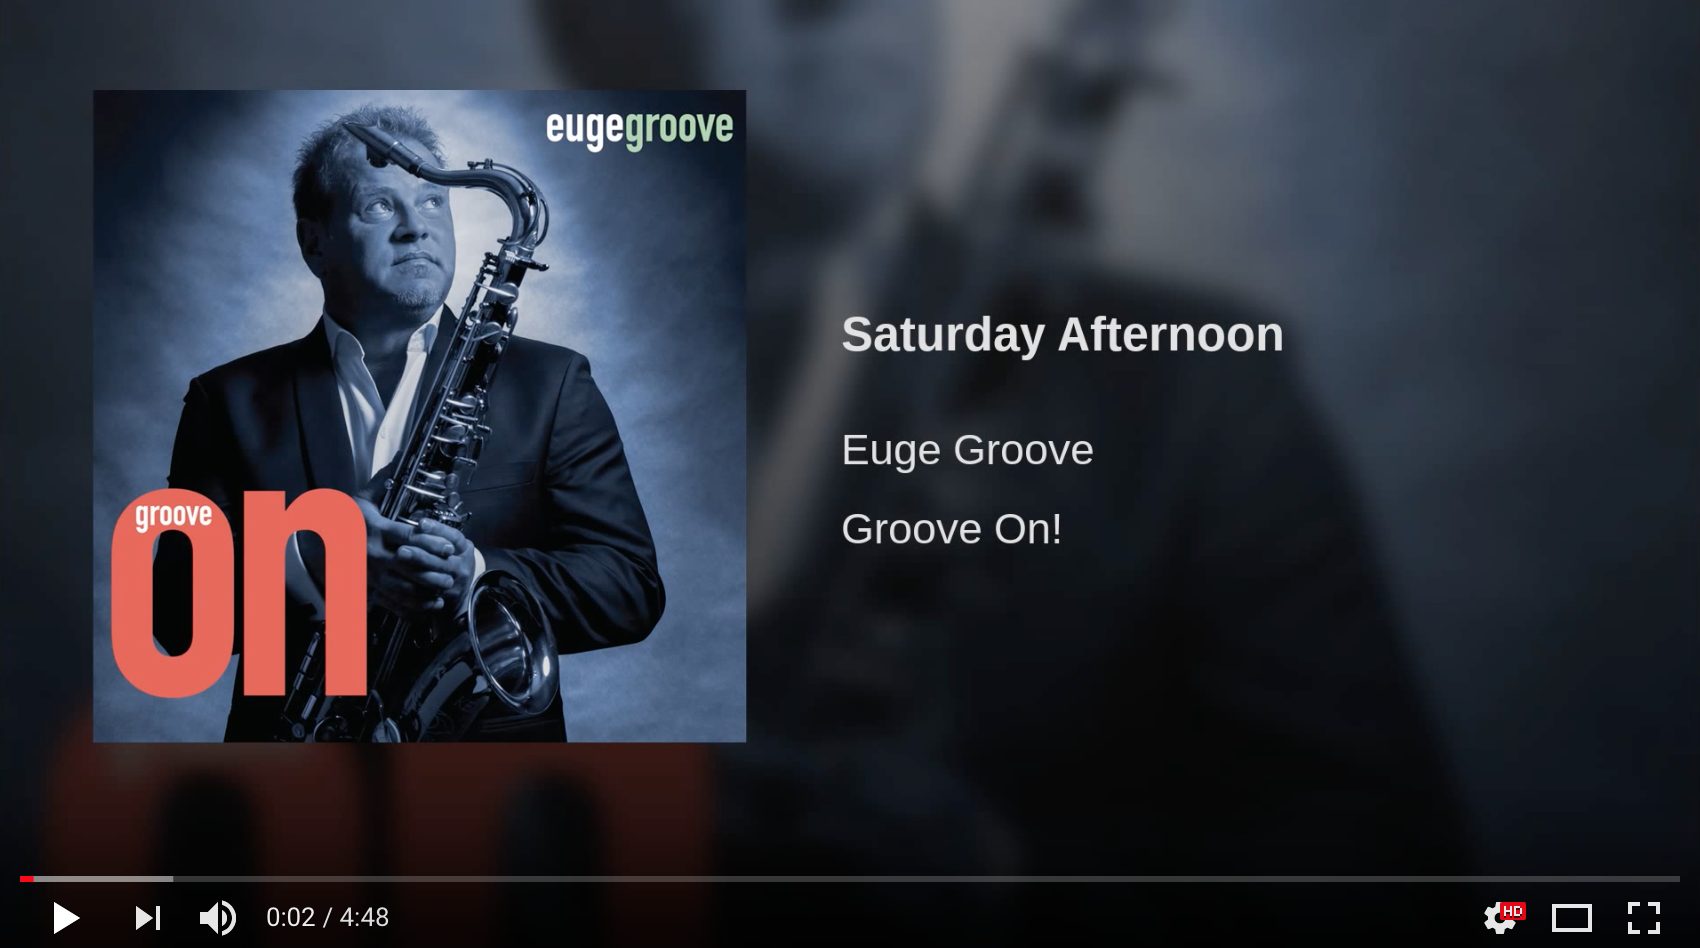 Euge Groove - Saturday Afternoon